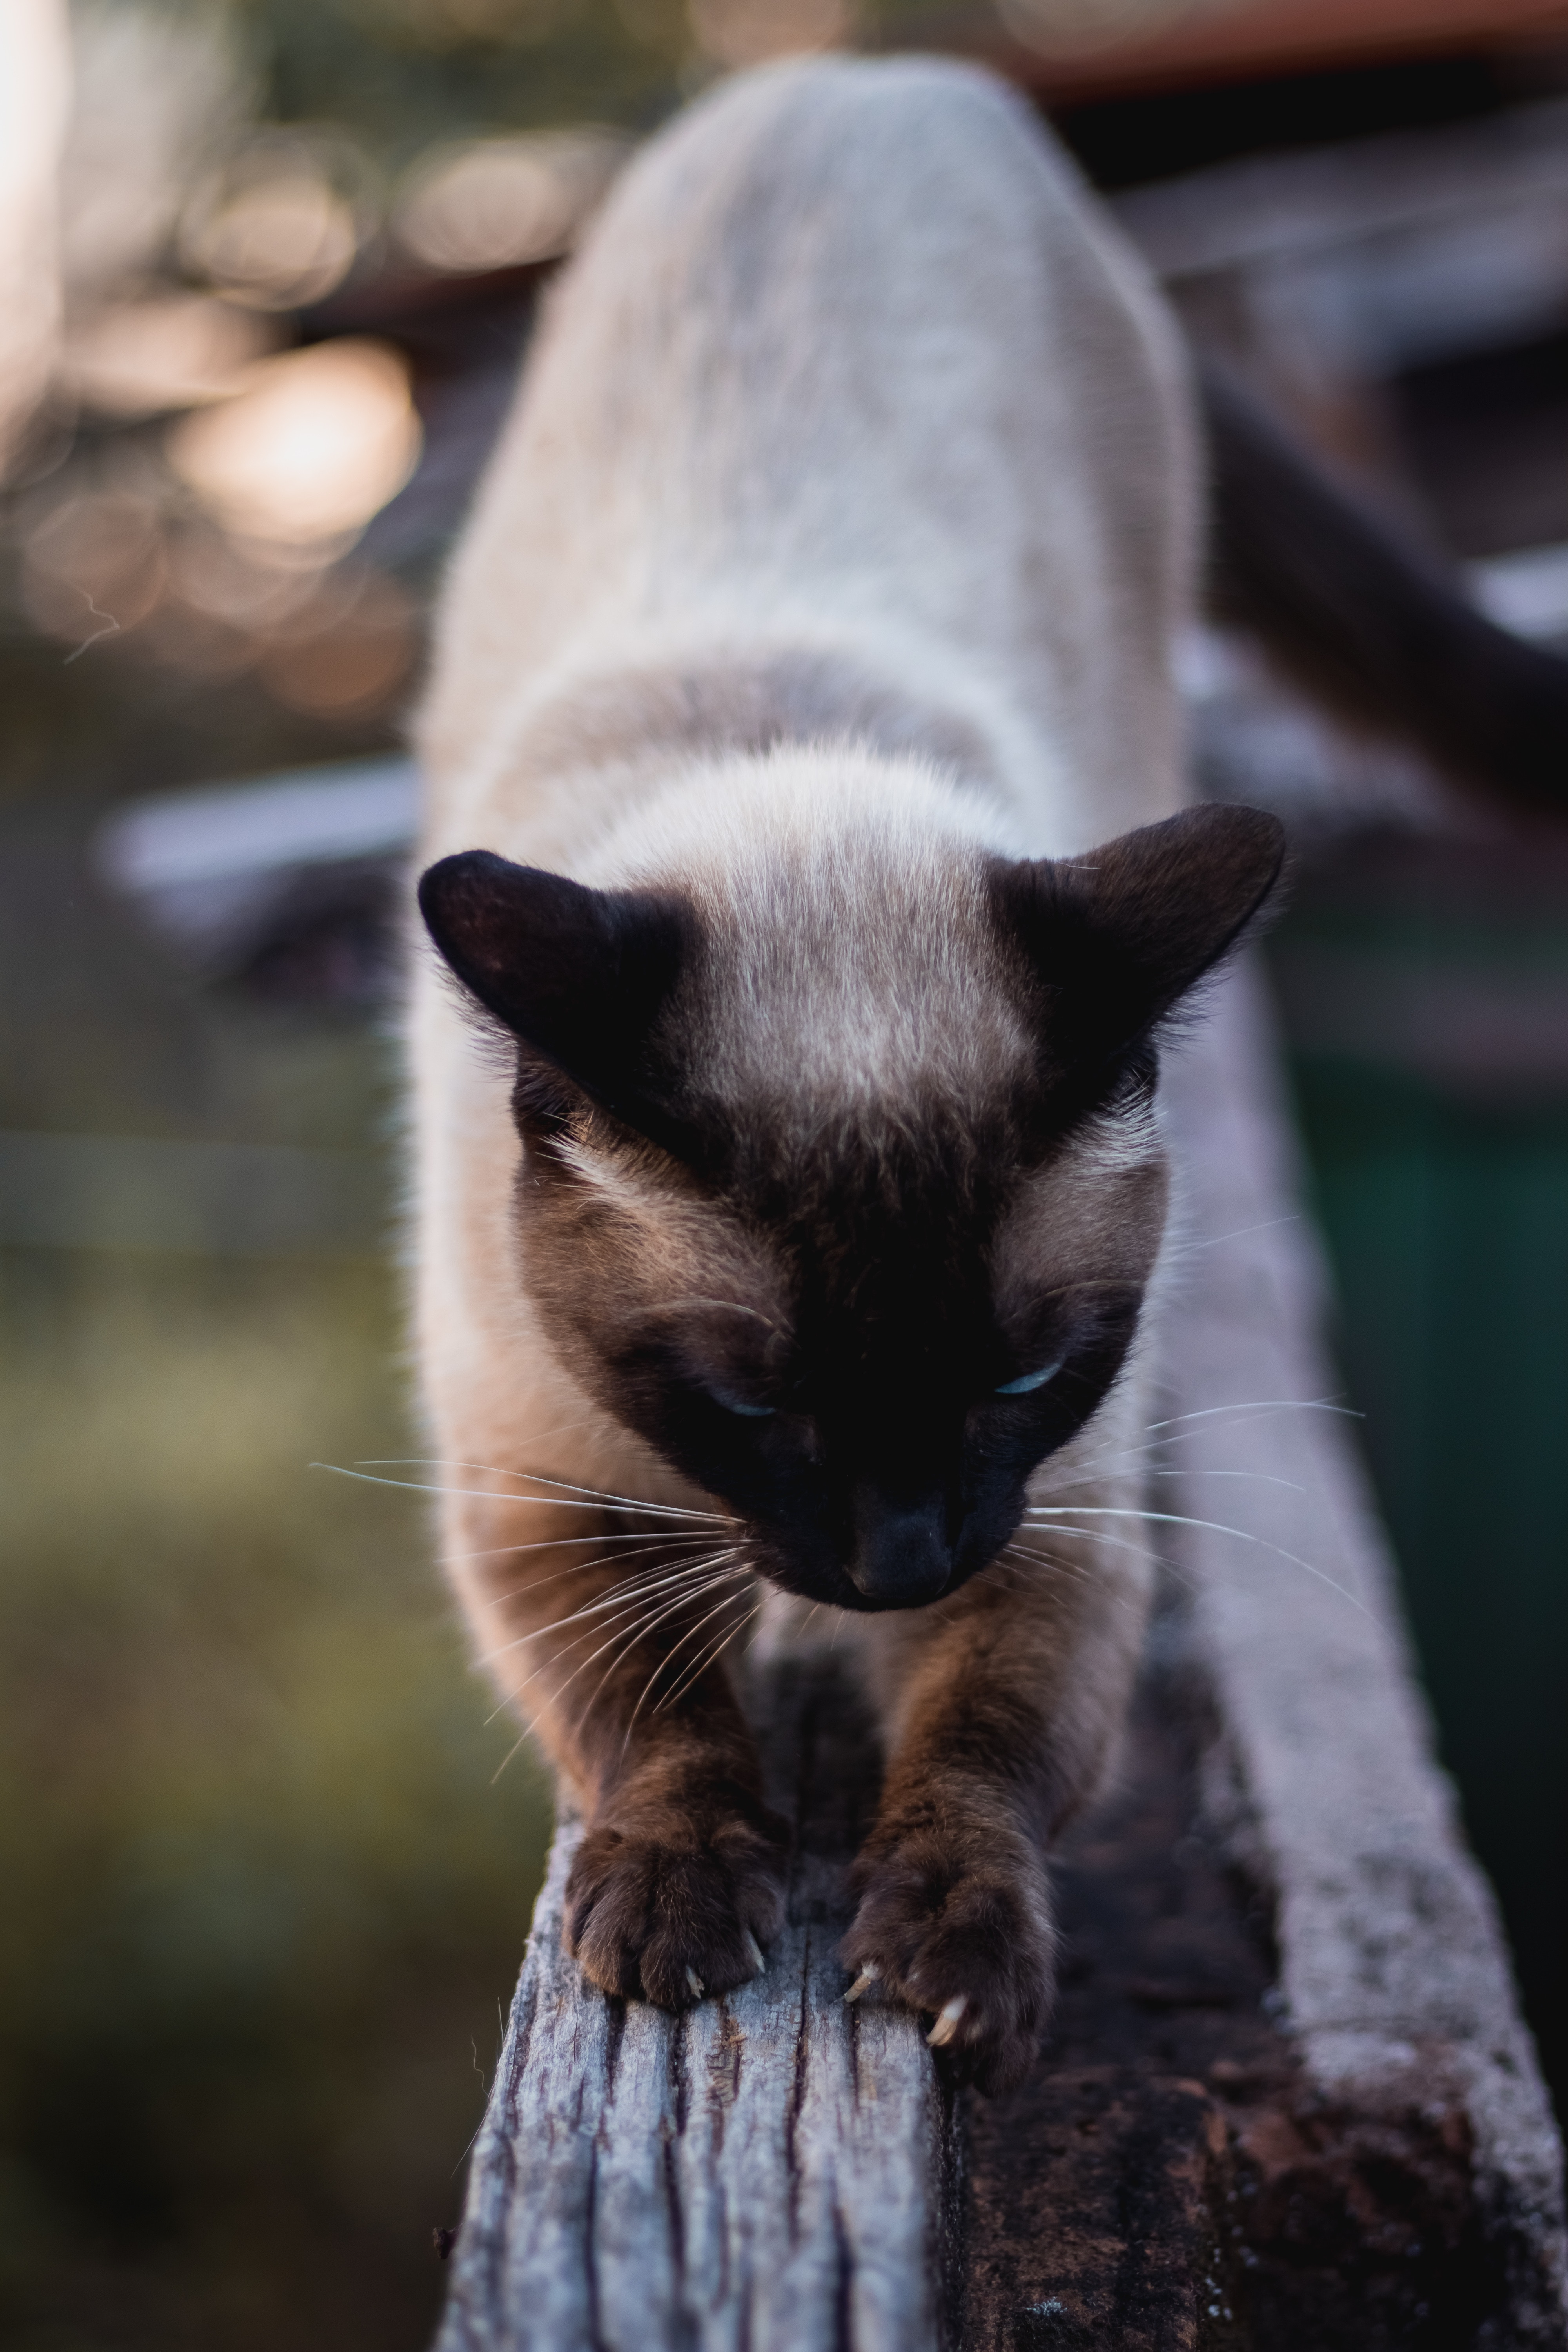 61925 download wallpaper Animals, Cat, Siamese, Claws, Wood, Tree, Pet screensavers and pictures for free